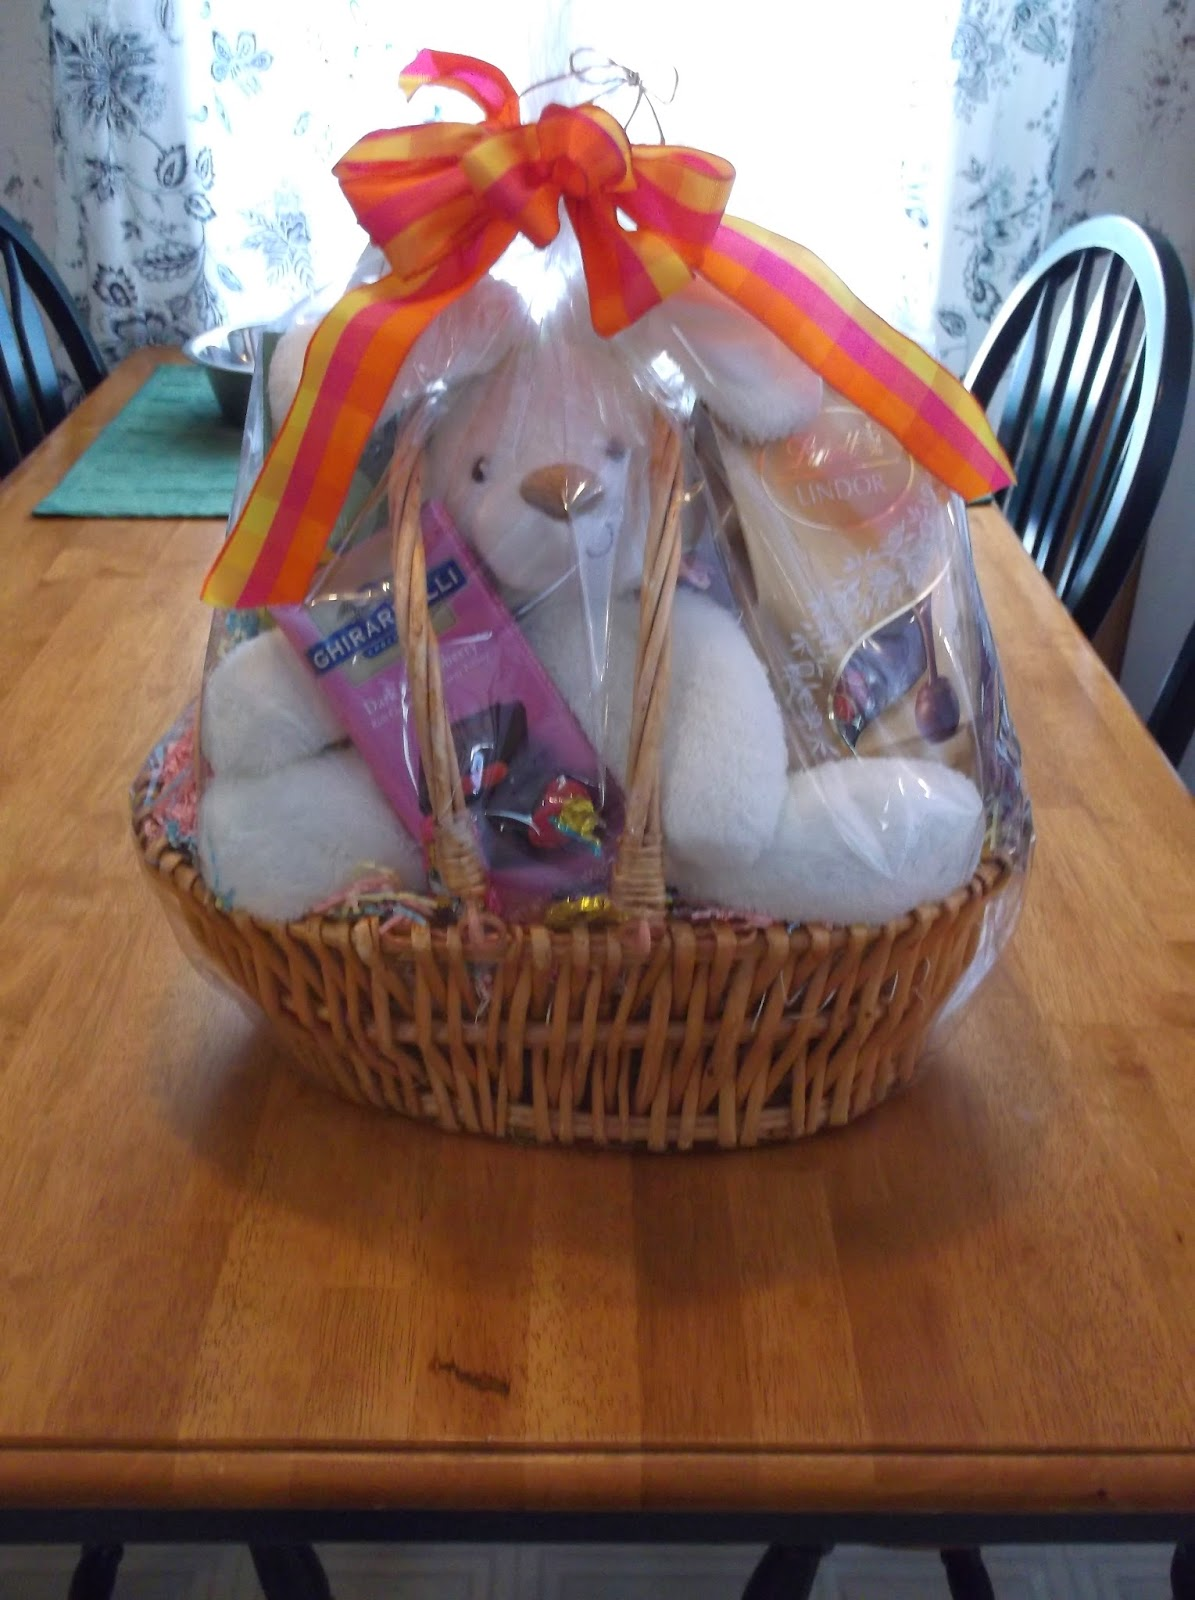 Missys product reviews sweet treats easter basket review and basket in my opinion my niece will like the bunny for easter so that is who i will give it to i love chocolate and all these were very tasty and yummy negle Images